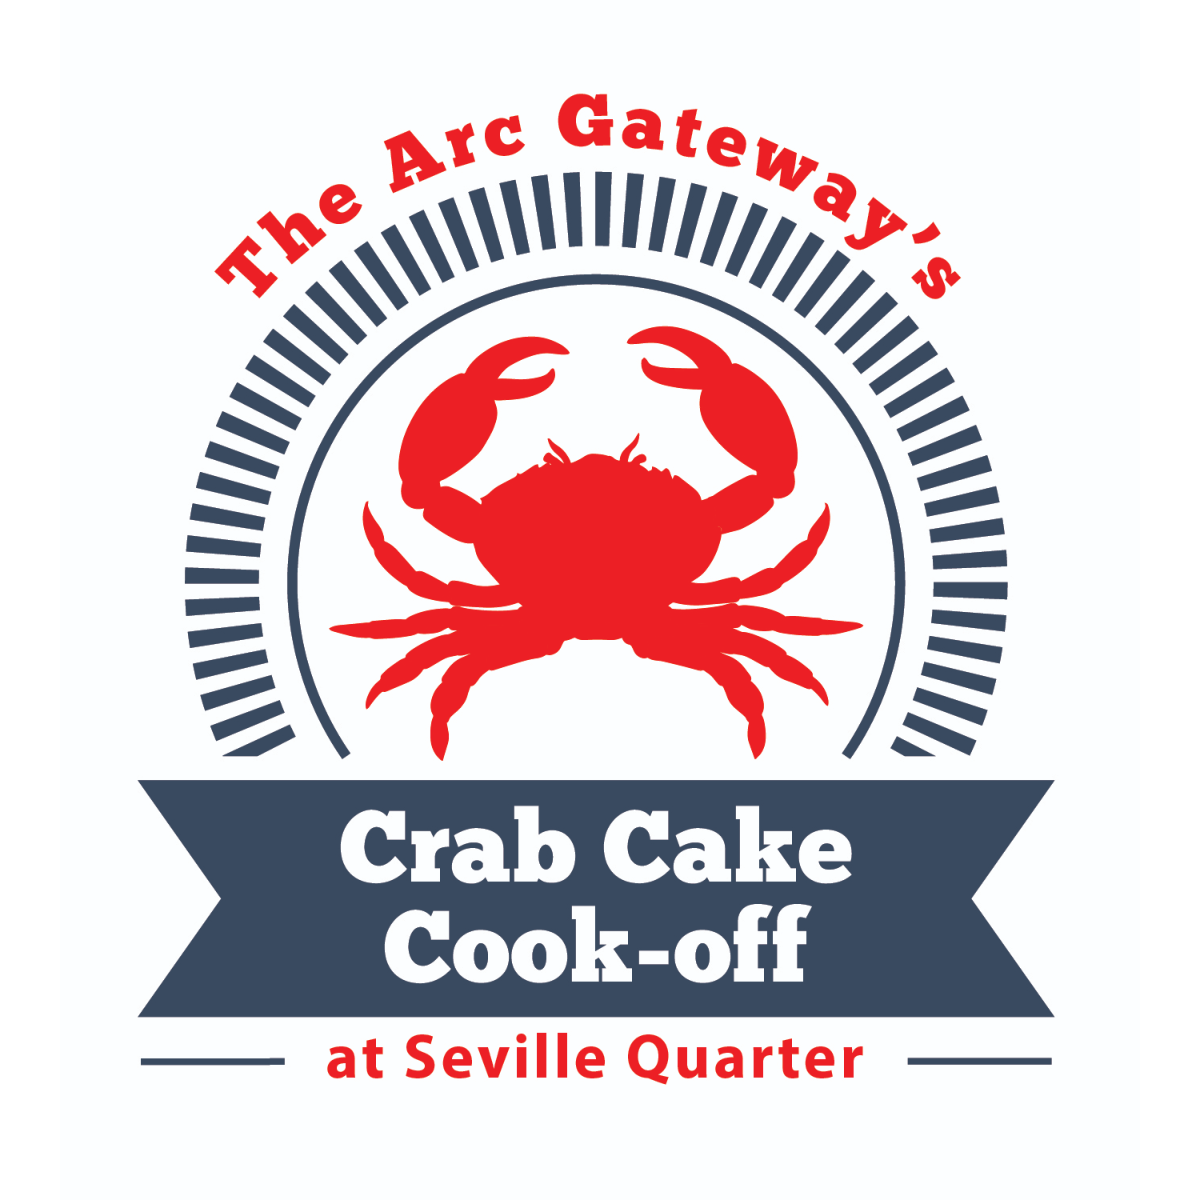 Crab Cake Cook-Off